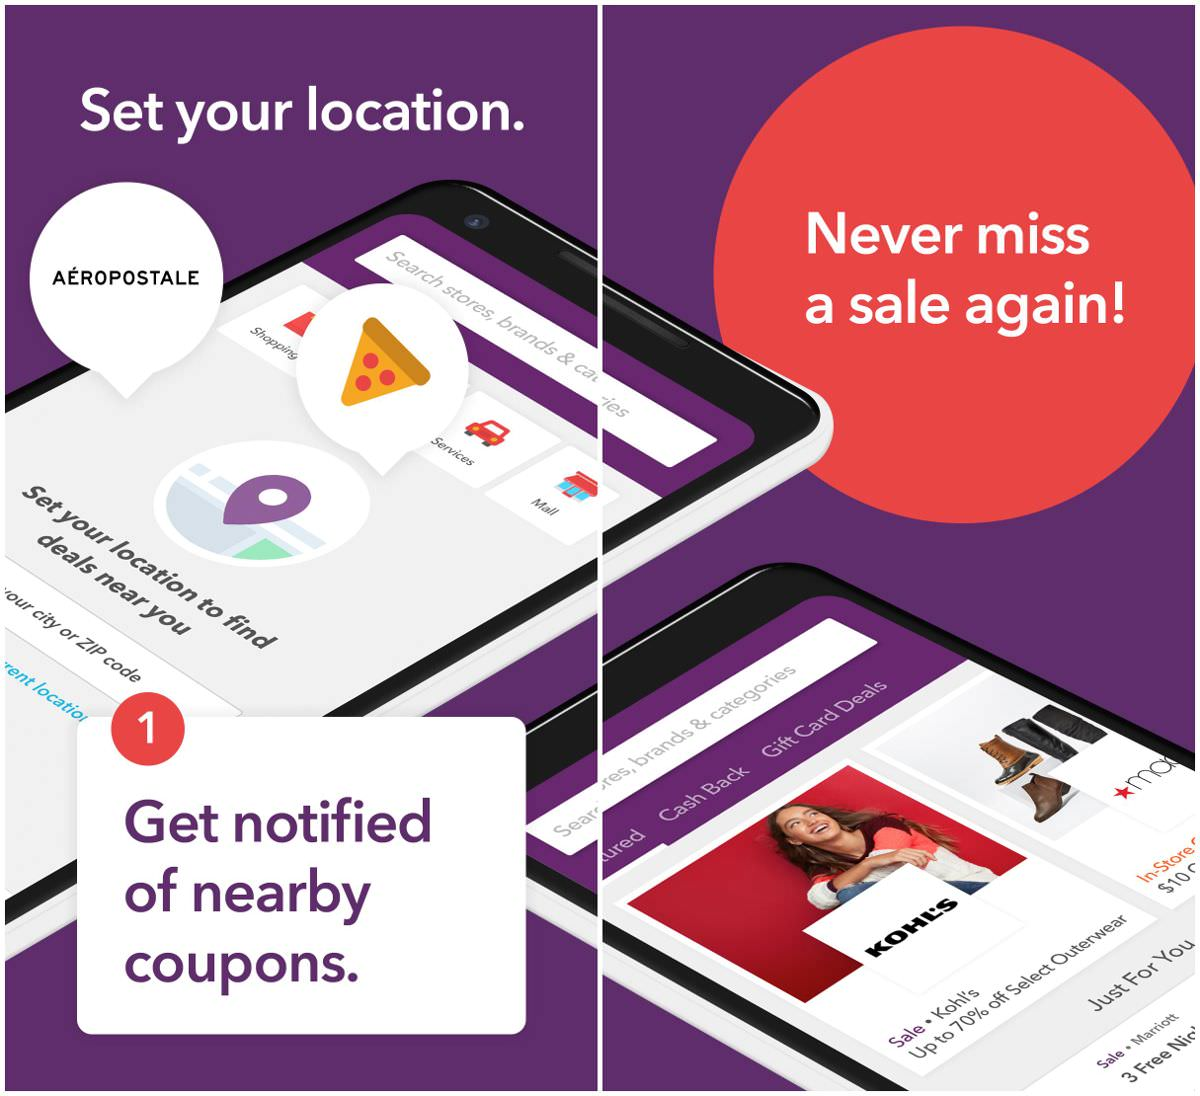 RetailMeNot offers coupons and discounts